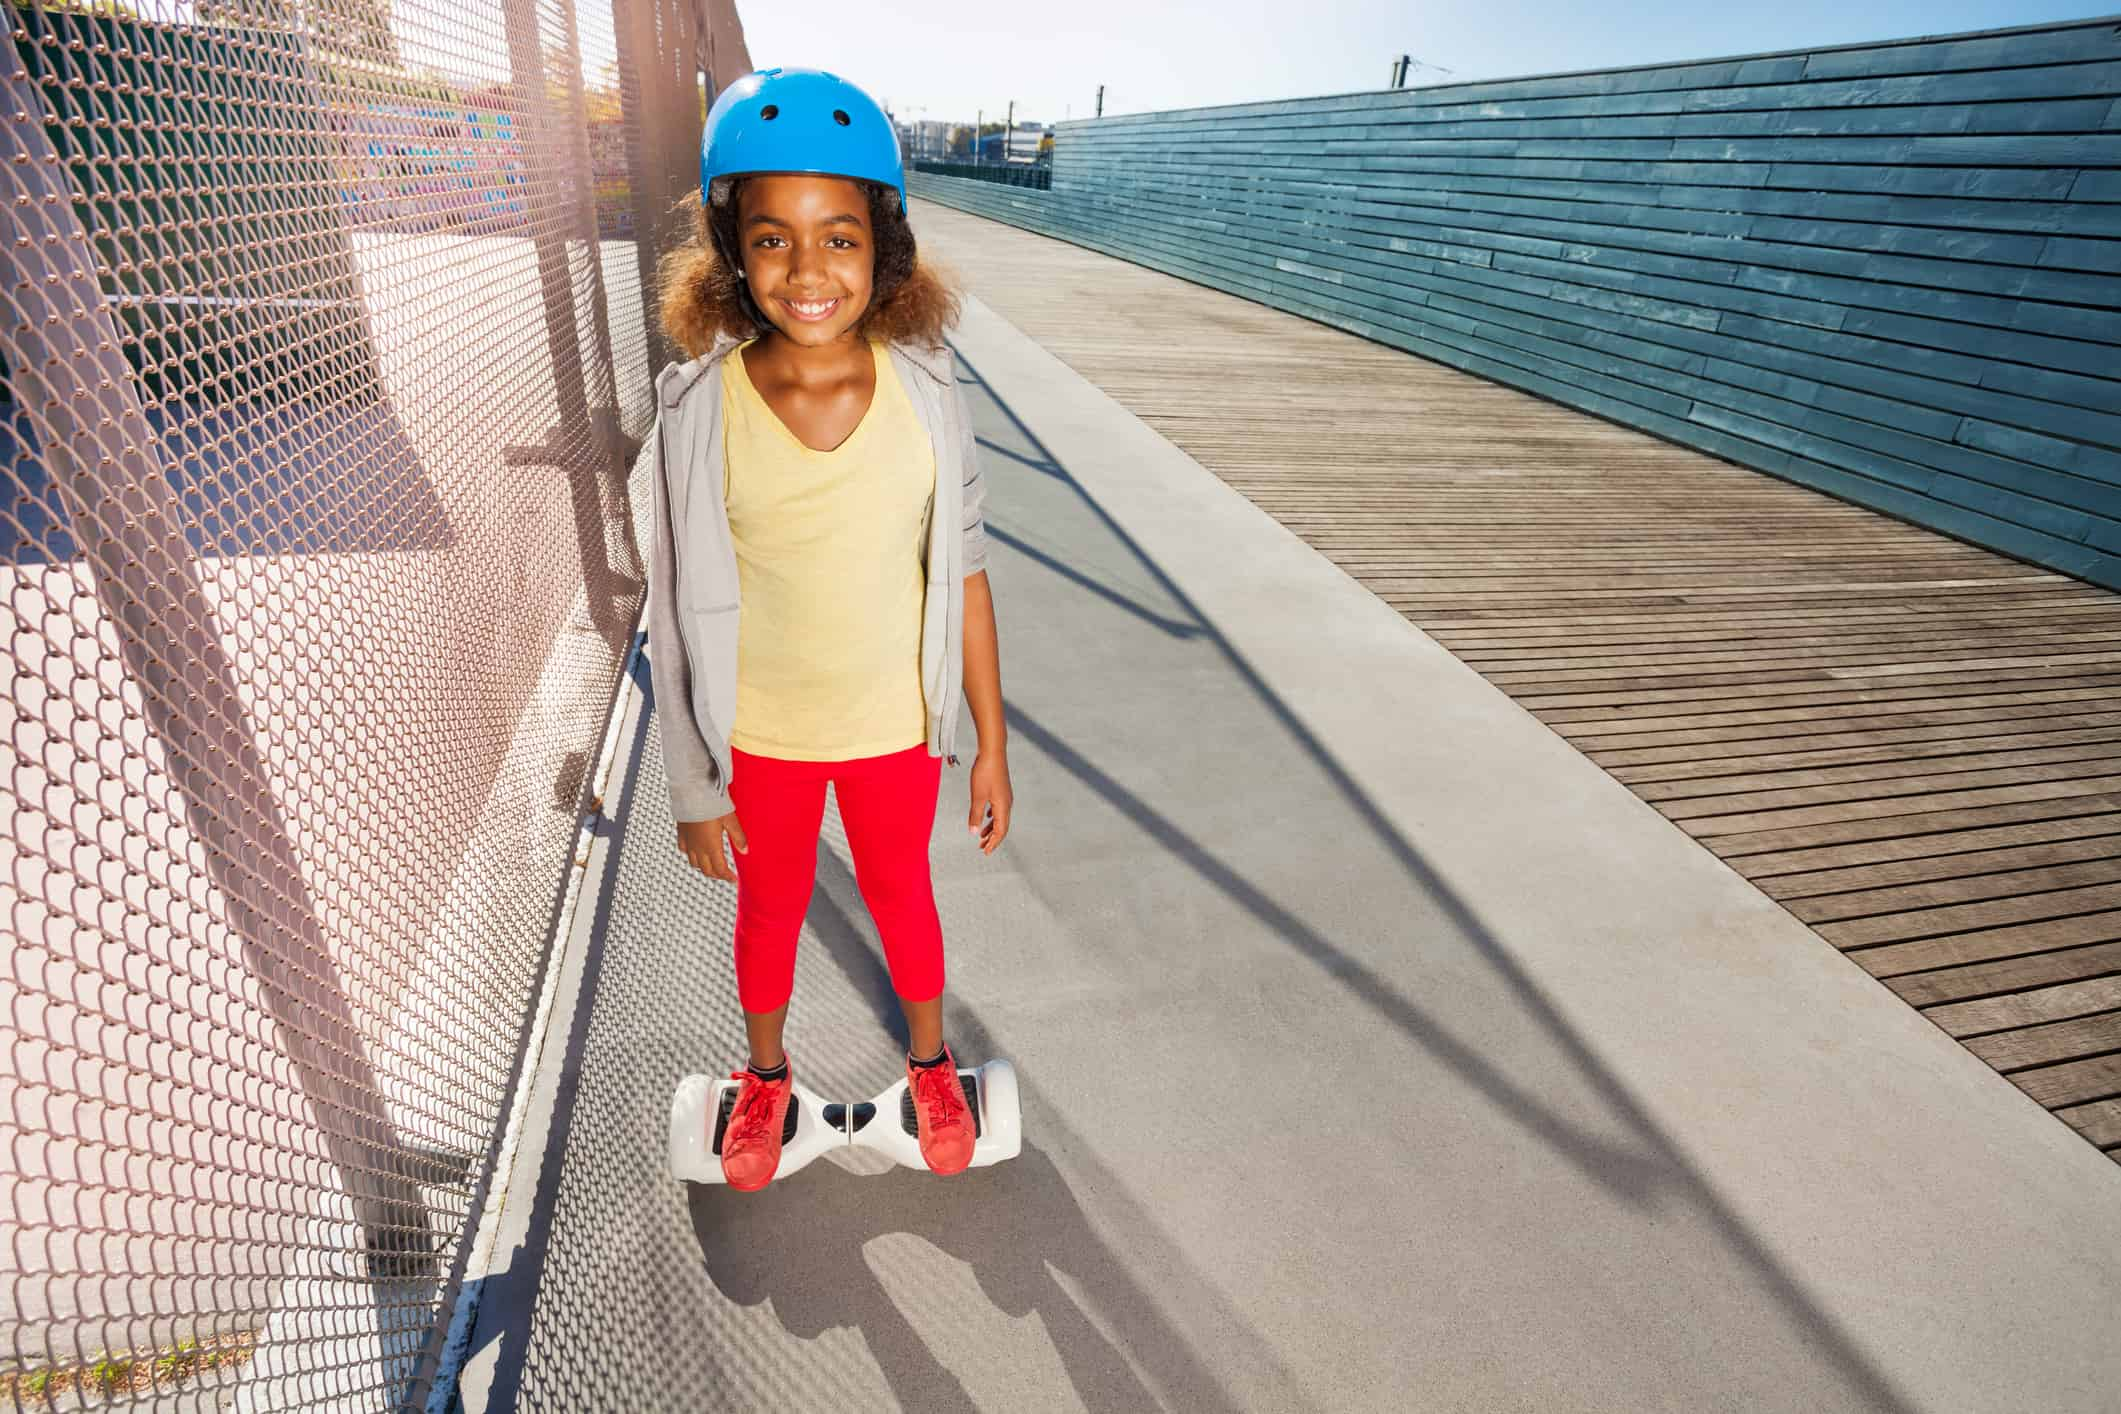 Best Hoverboards for Kids in 2021: Guides and Tips on How to Choose the Right One